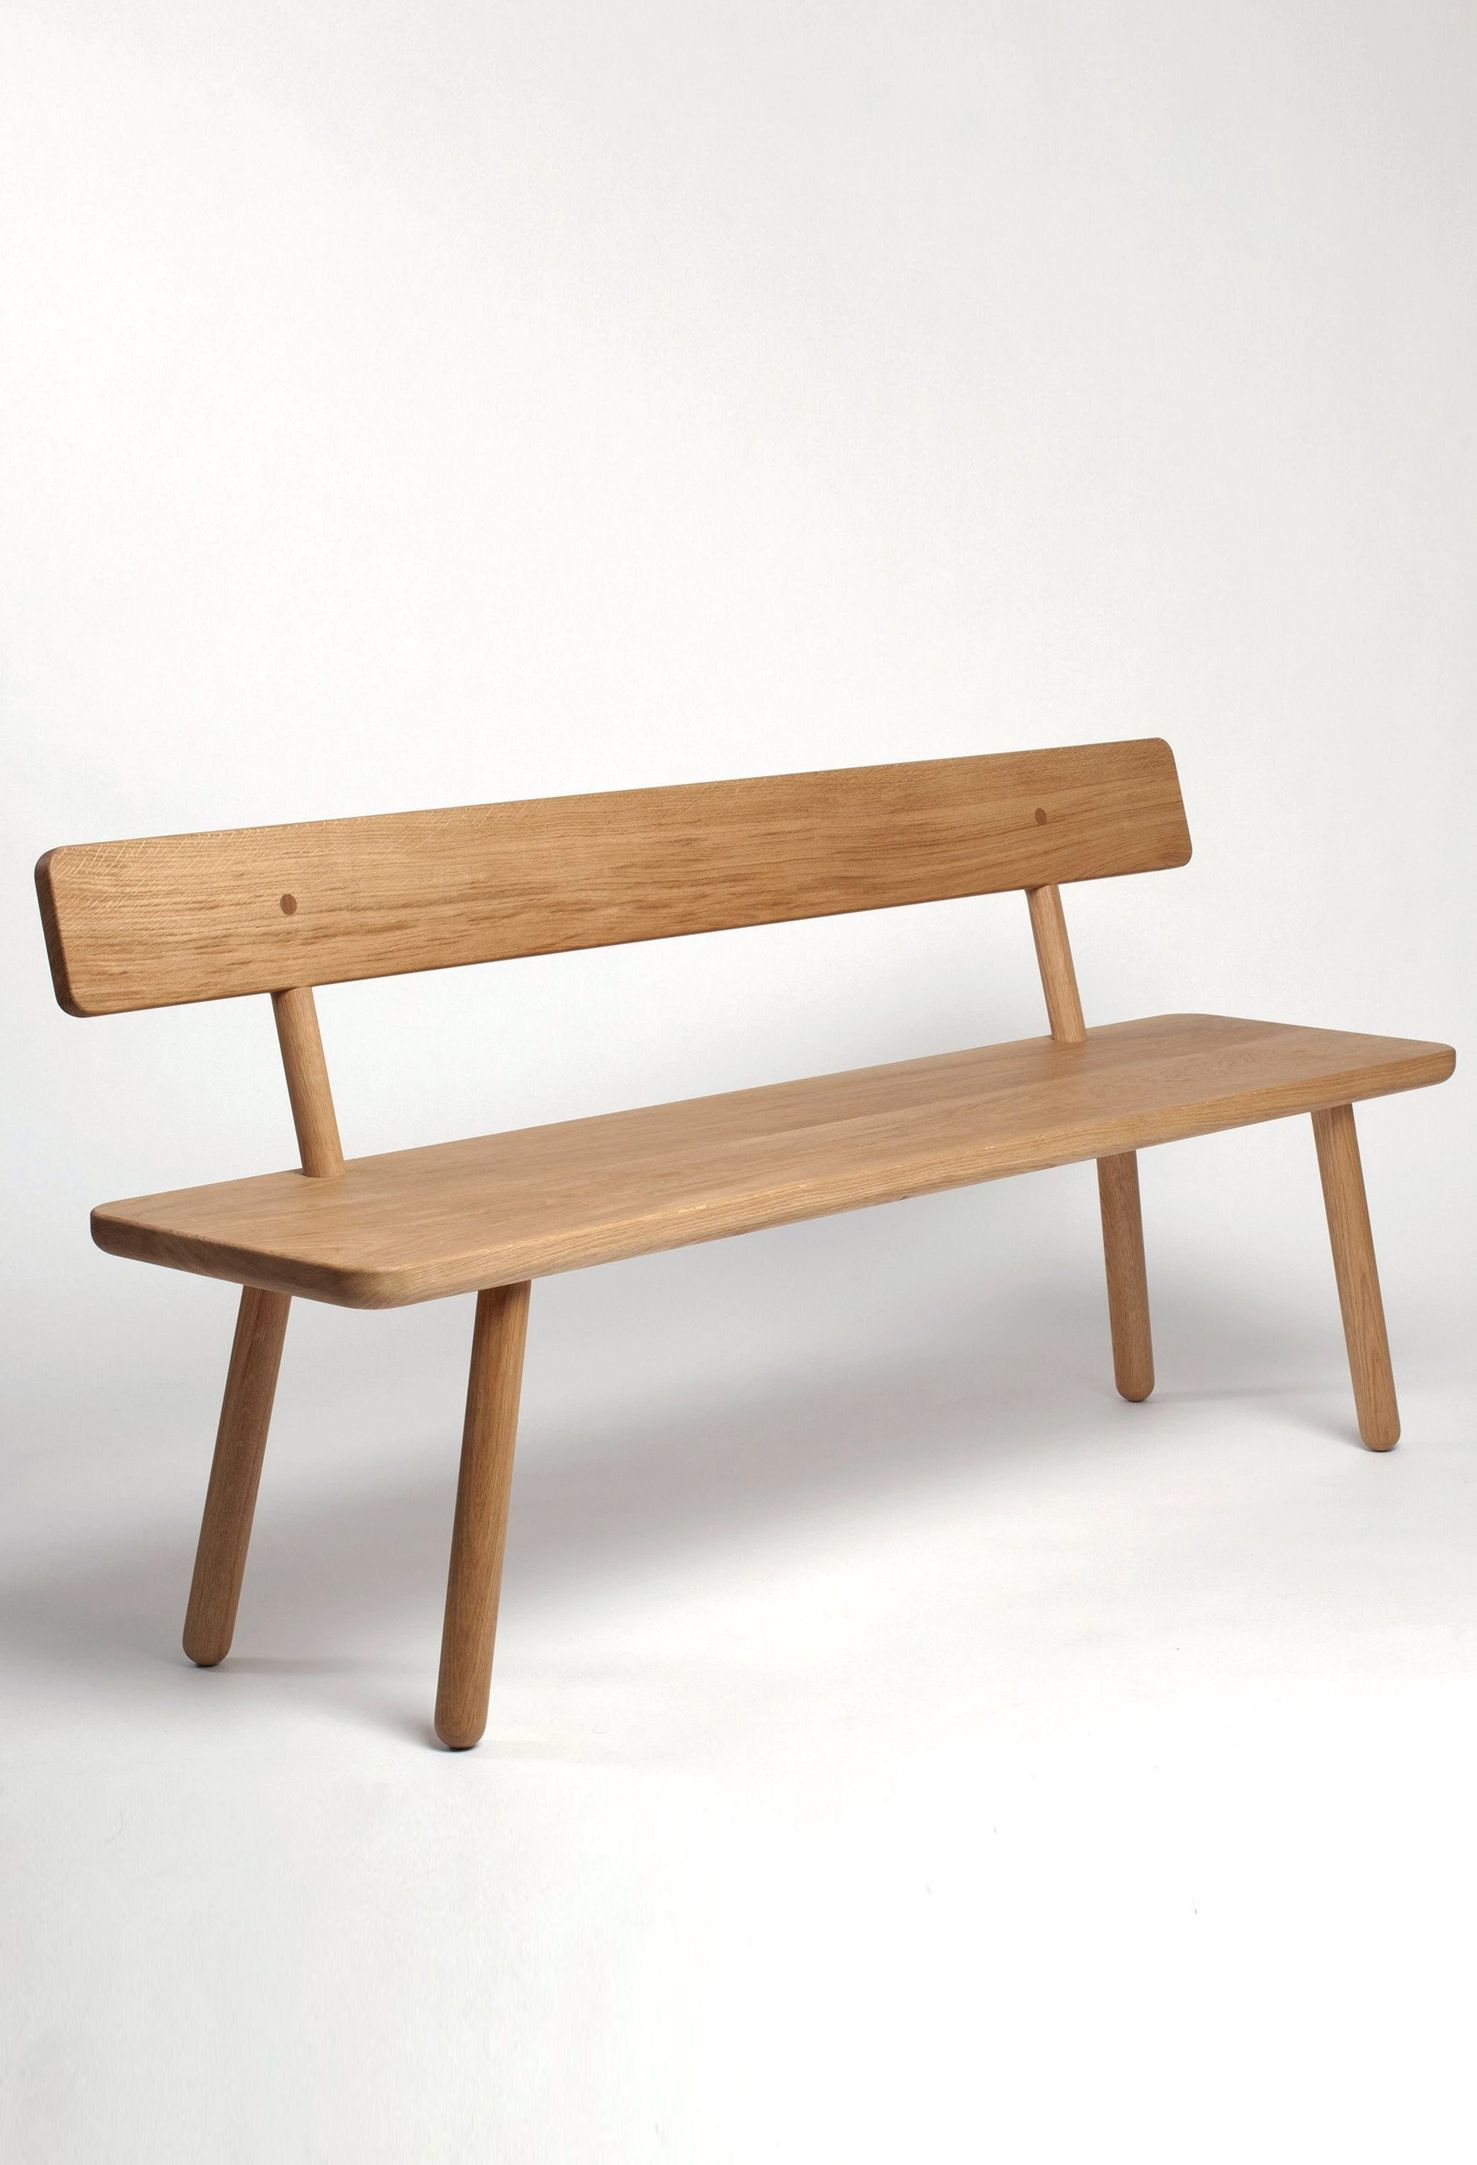 Bench Back One Another Country Bench Designs Bench Home Decor